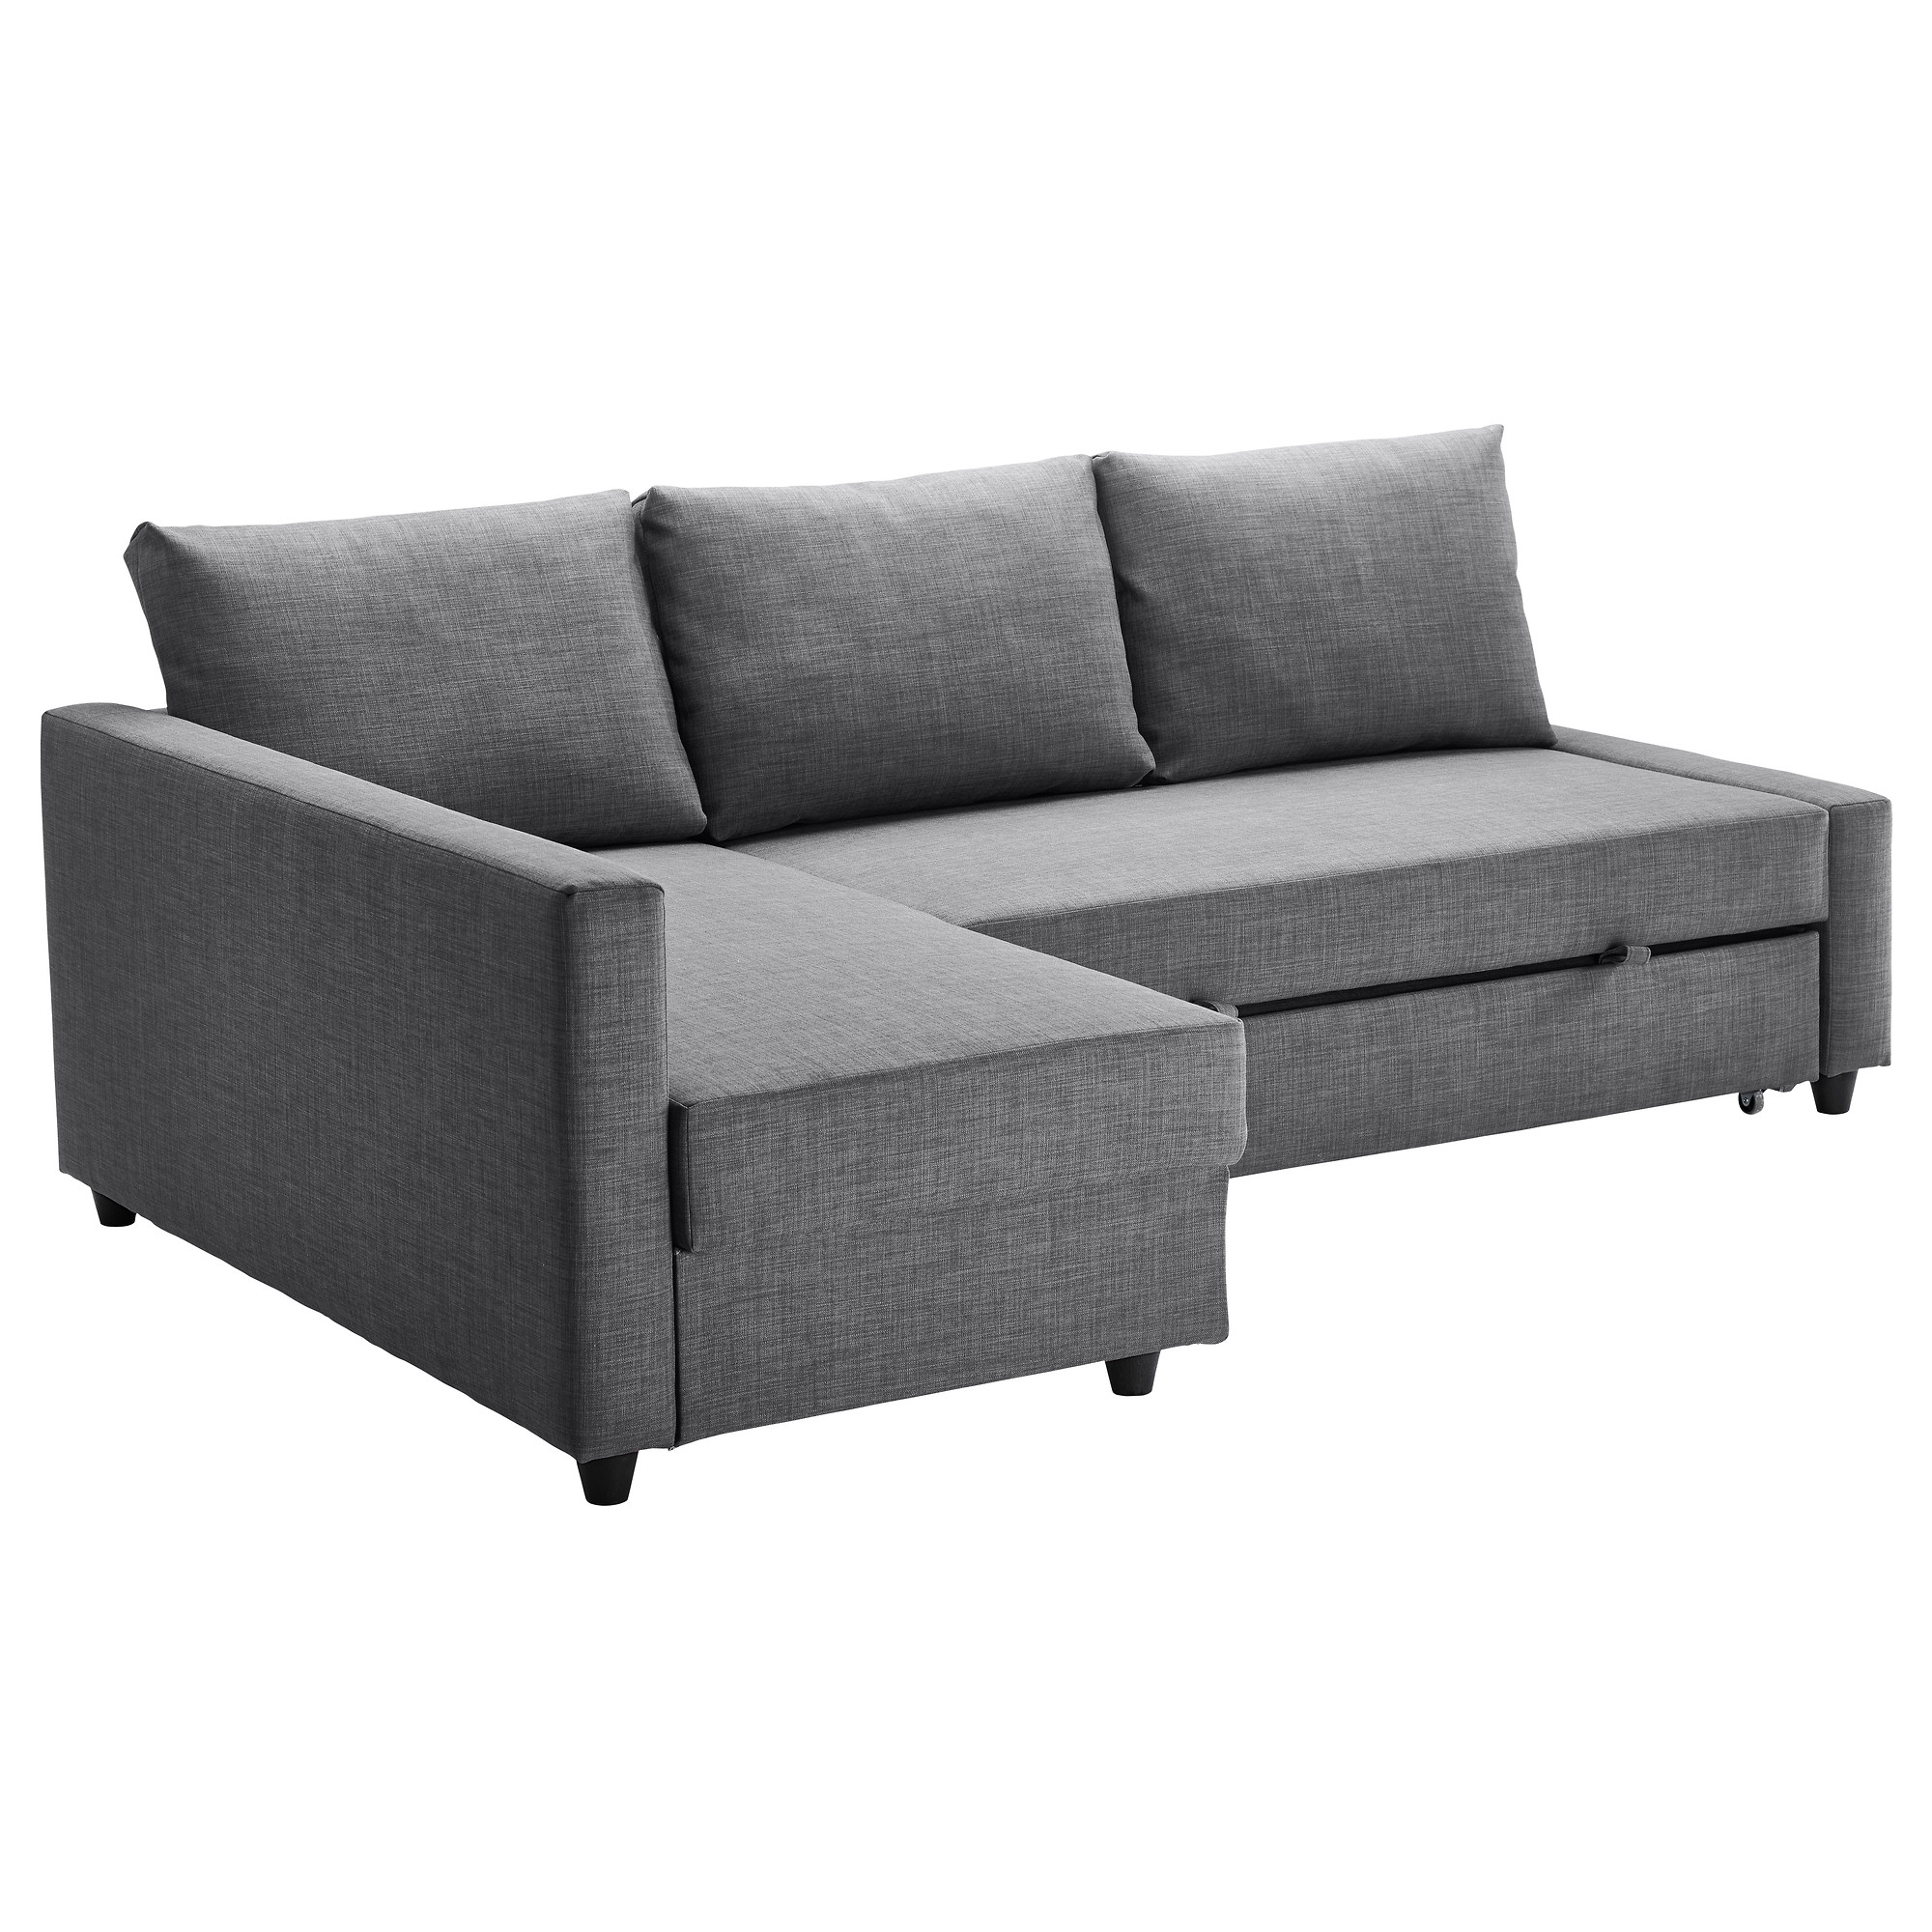 Most Up To Date Ikea Small Sofas Inside Friheten Corner Sofa Bed With Storage Skiftebo Dark Grey – Ikea (Gallery 9 of 15)